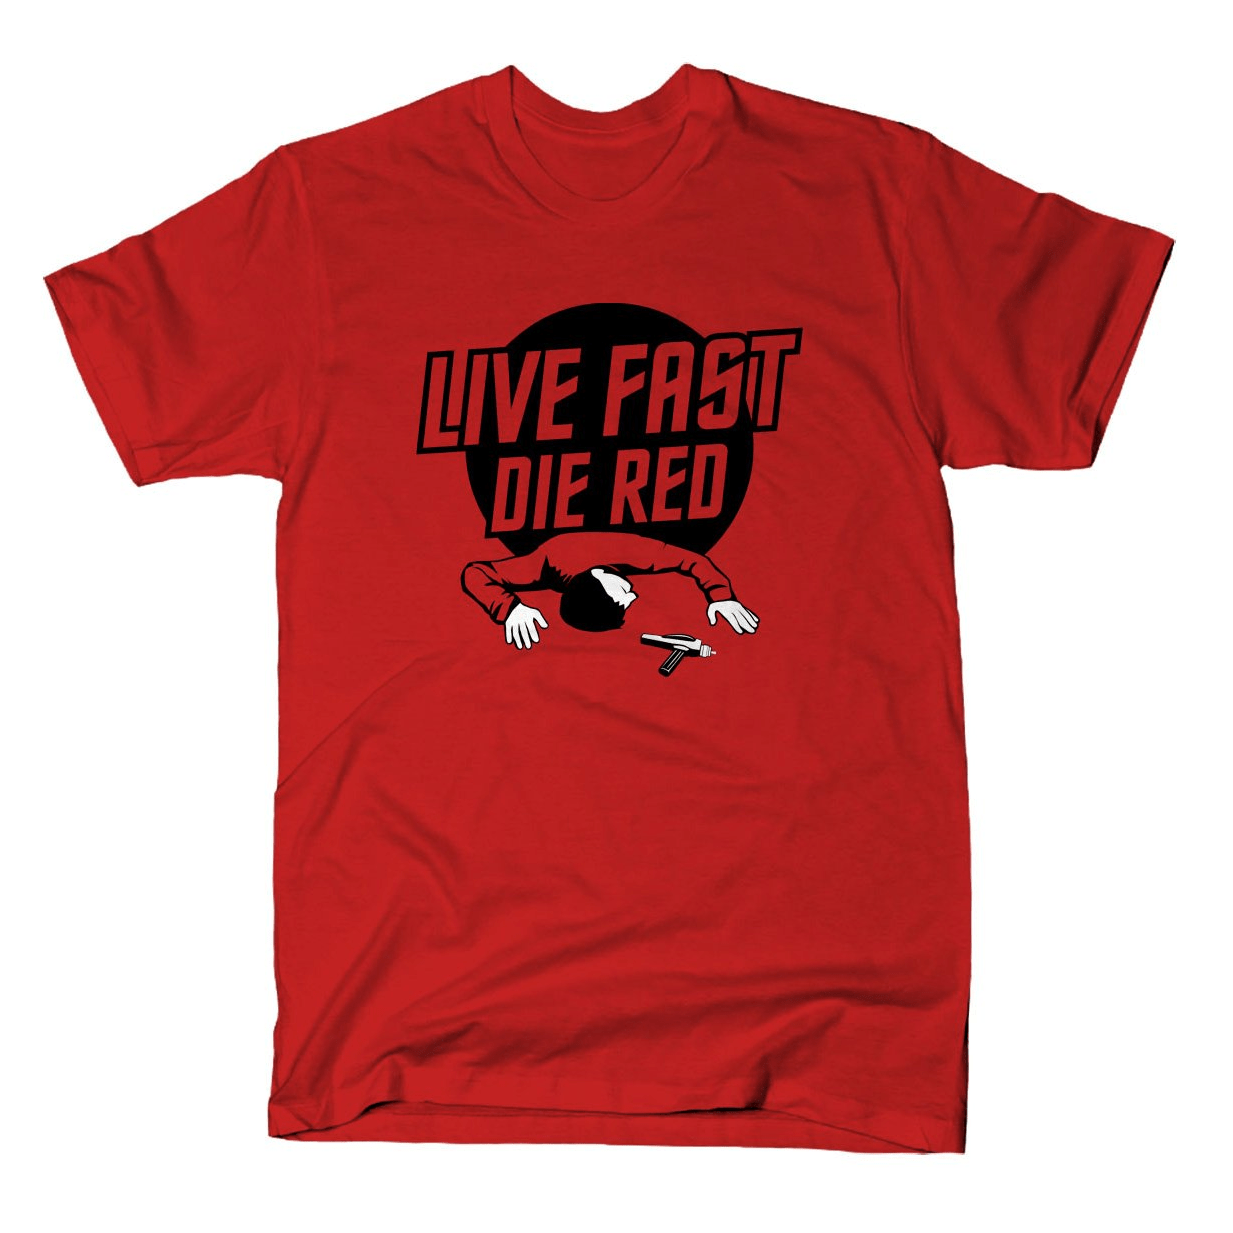 Live Fast Die Red shirt Snorgtees Clothing/Accessories